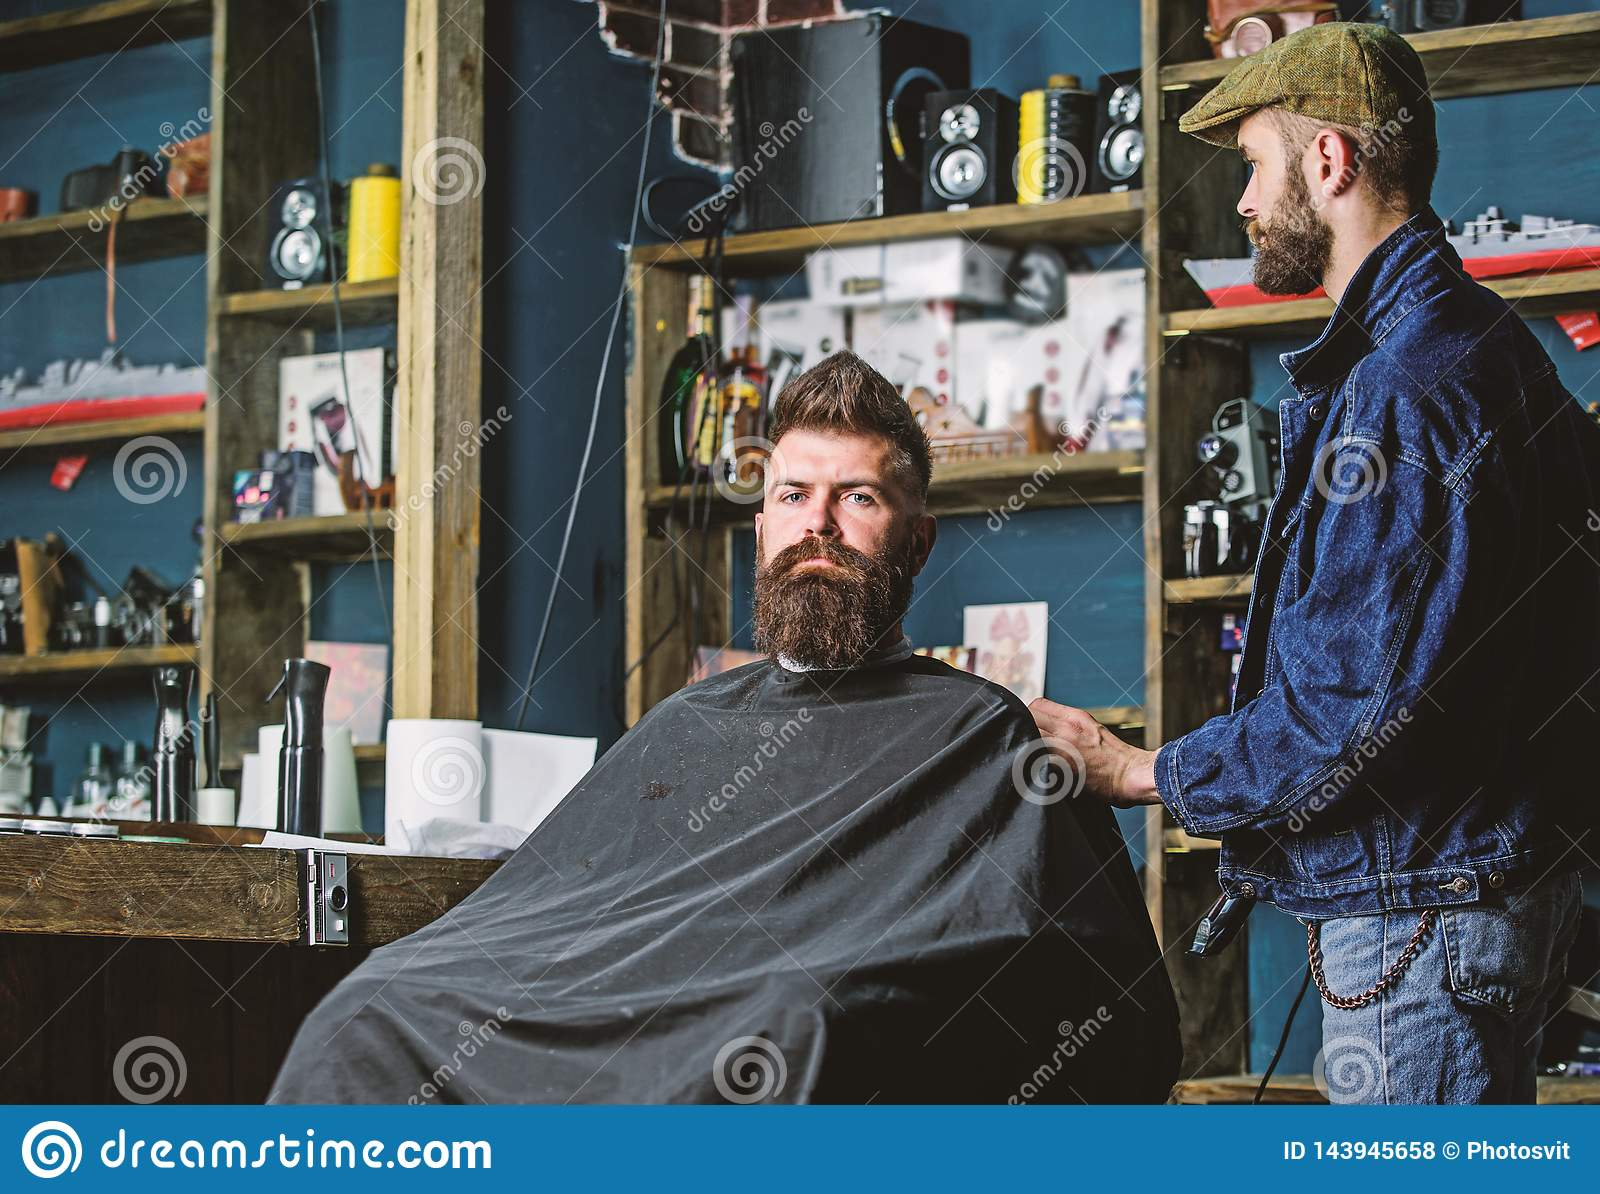 Hipster client got new haircut. Barber with hair clipper looking at mirror, barbershop background. Haircut concept